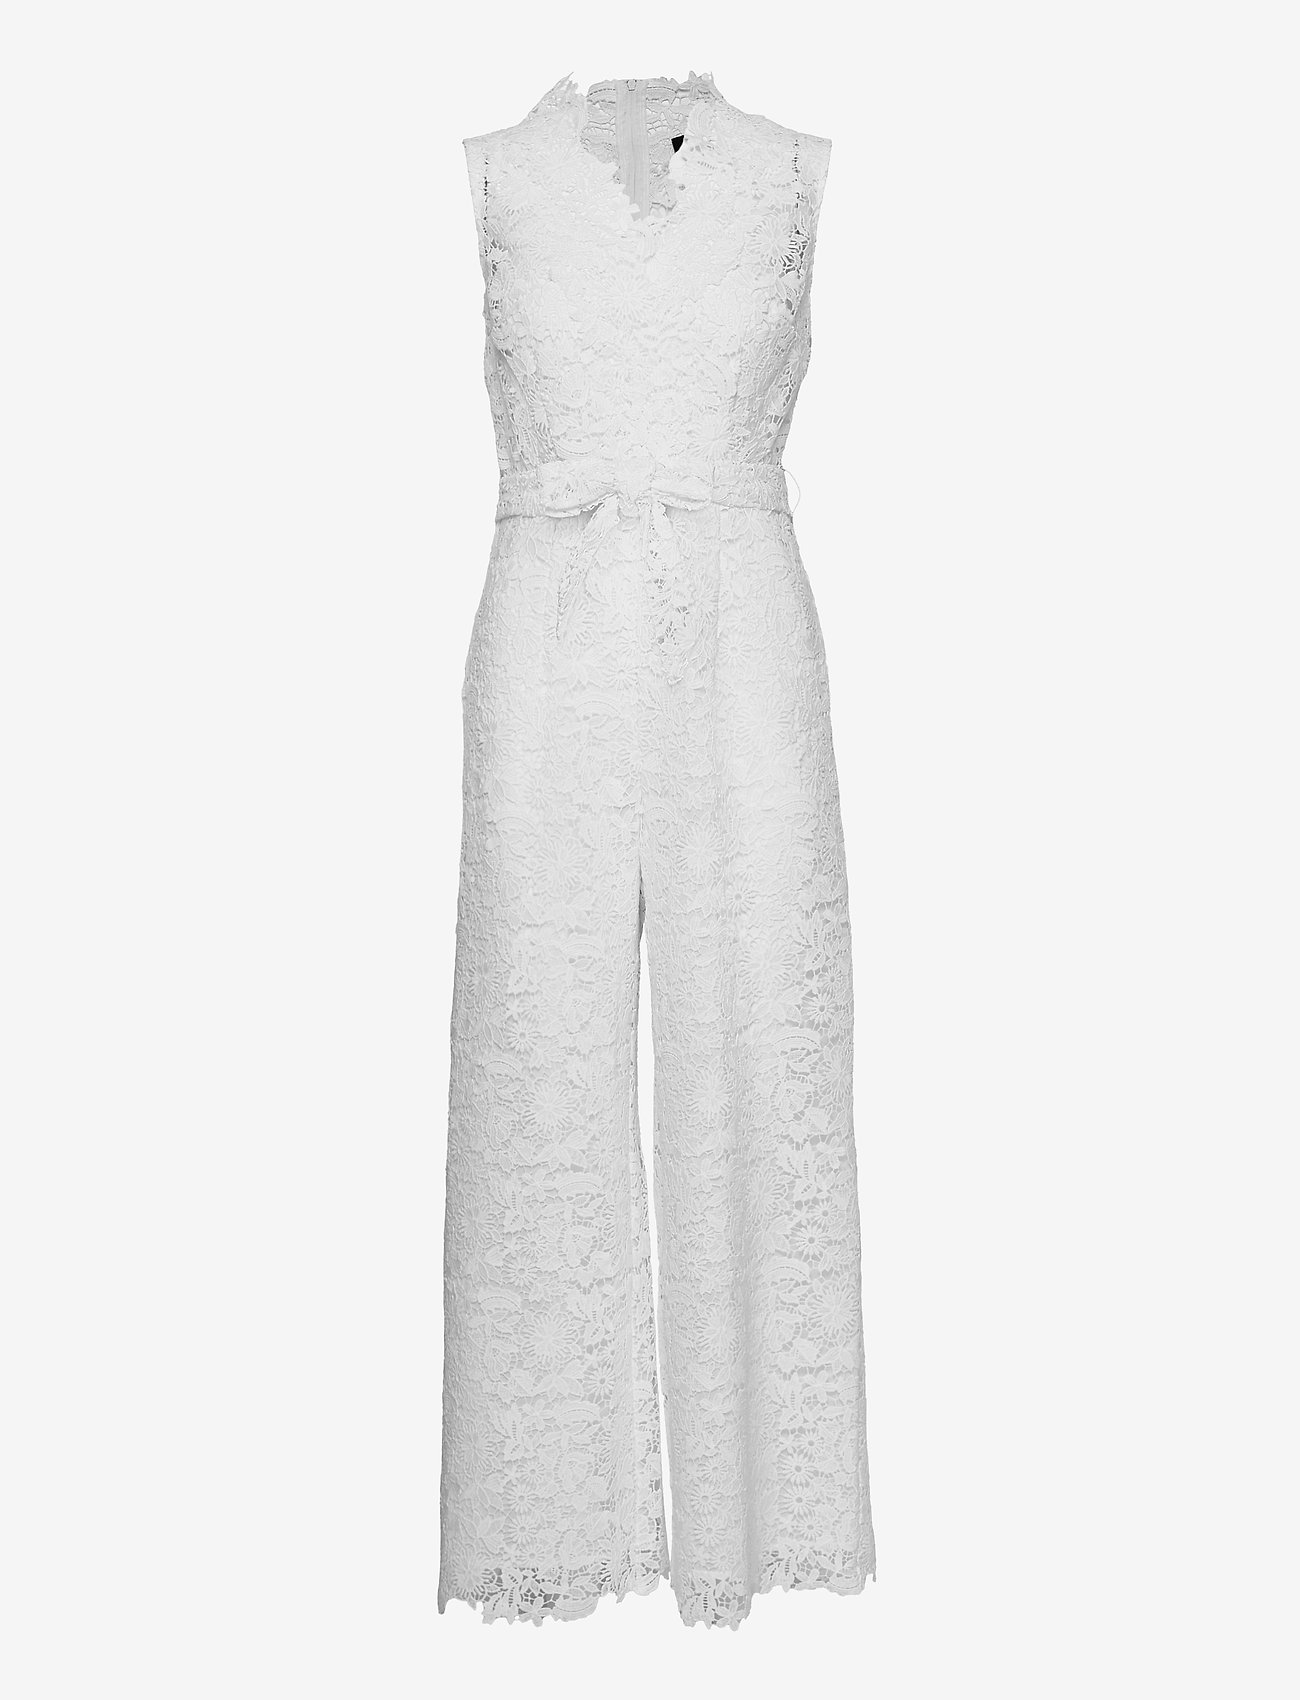 SAND - 3180 - Whitney 2 - jumpsuits - off white - 0